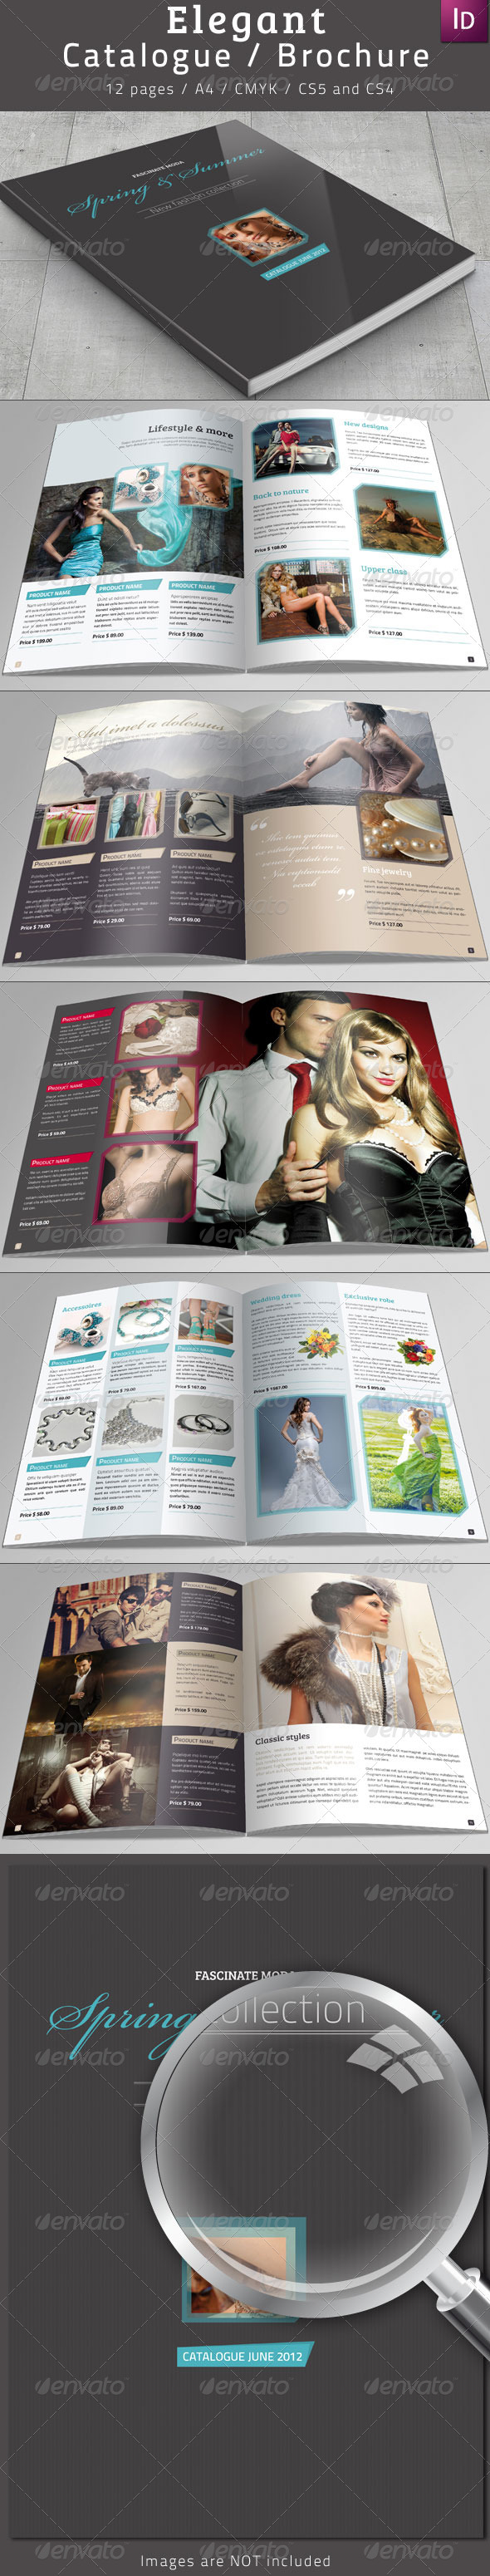 GraphicRiver Elegant Catalogue Brochure 2397328